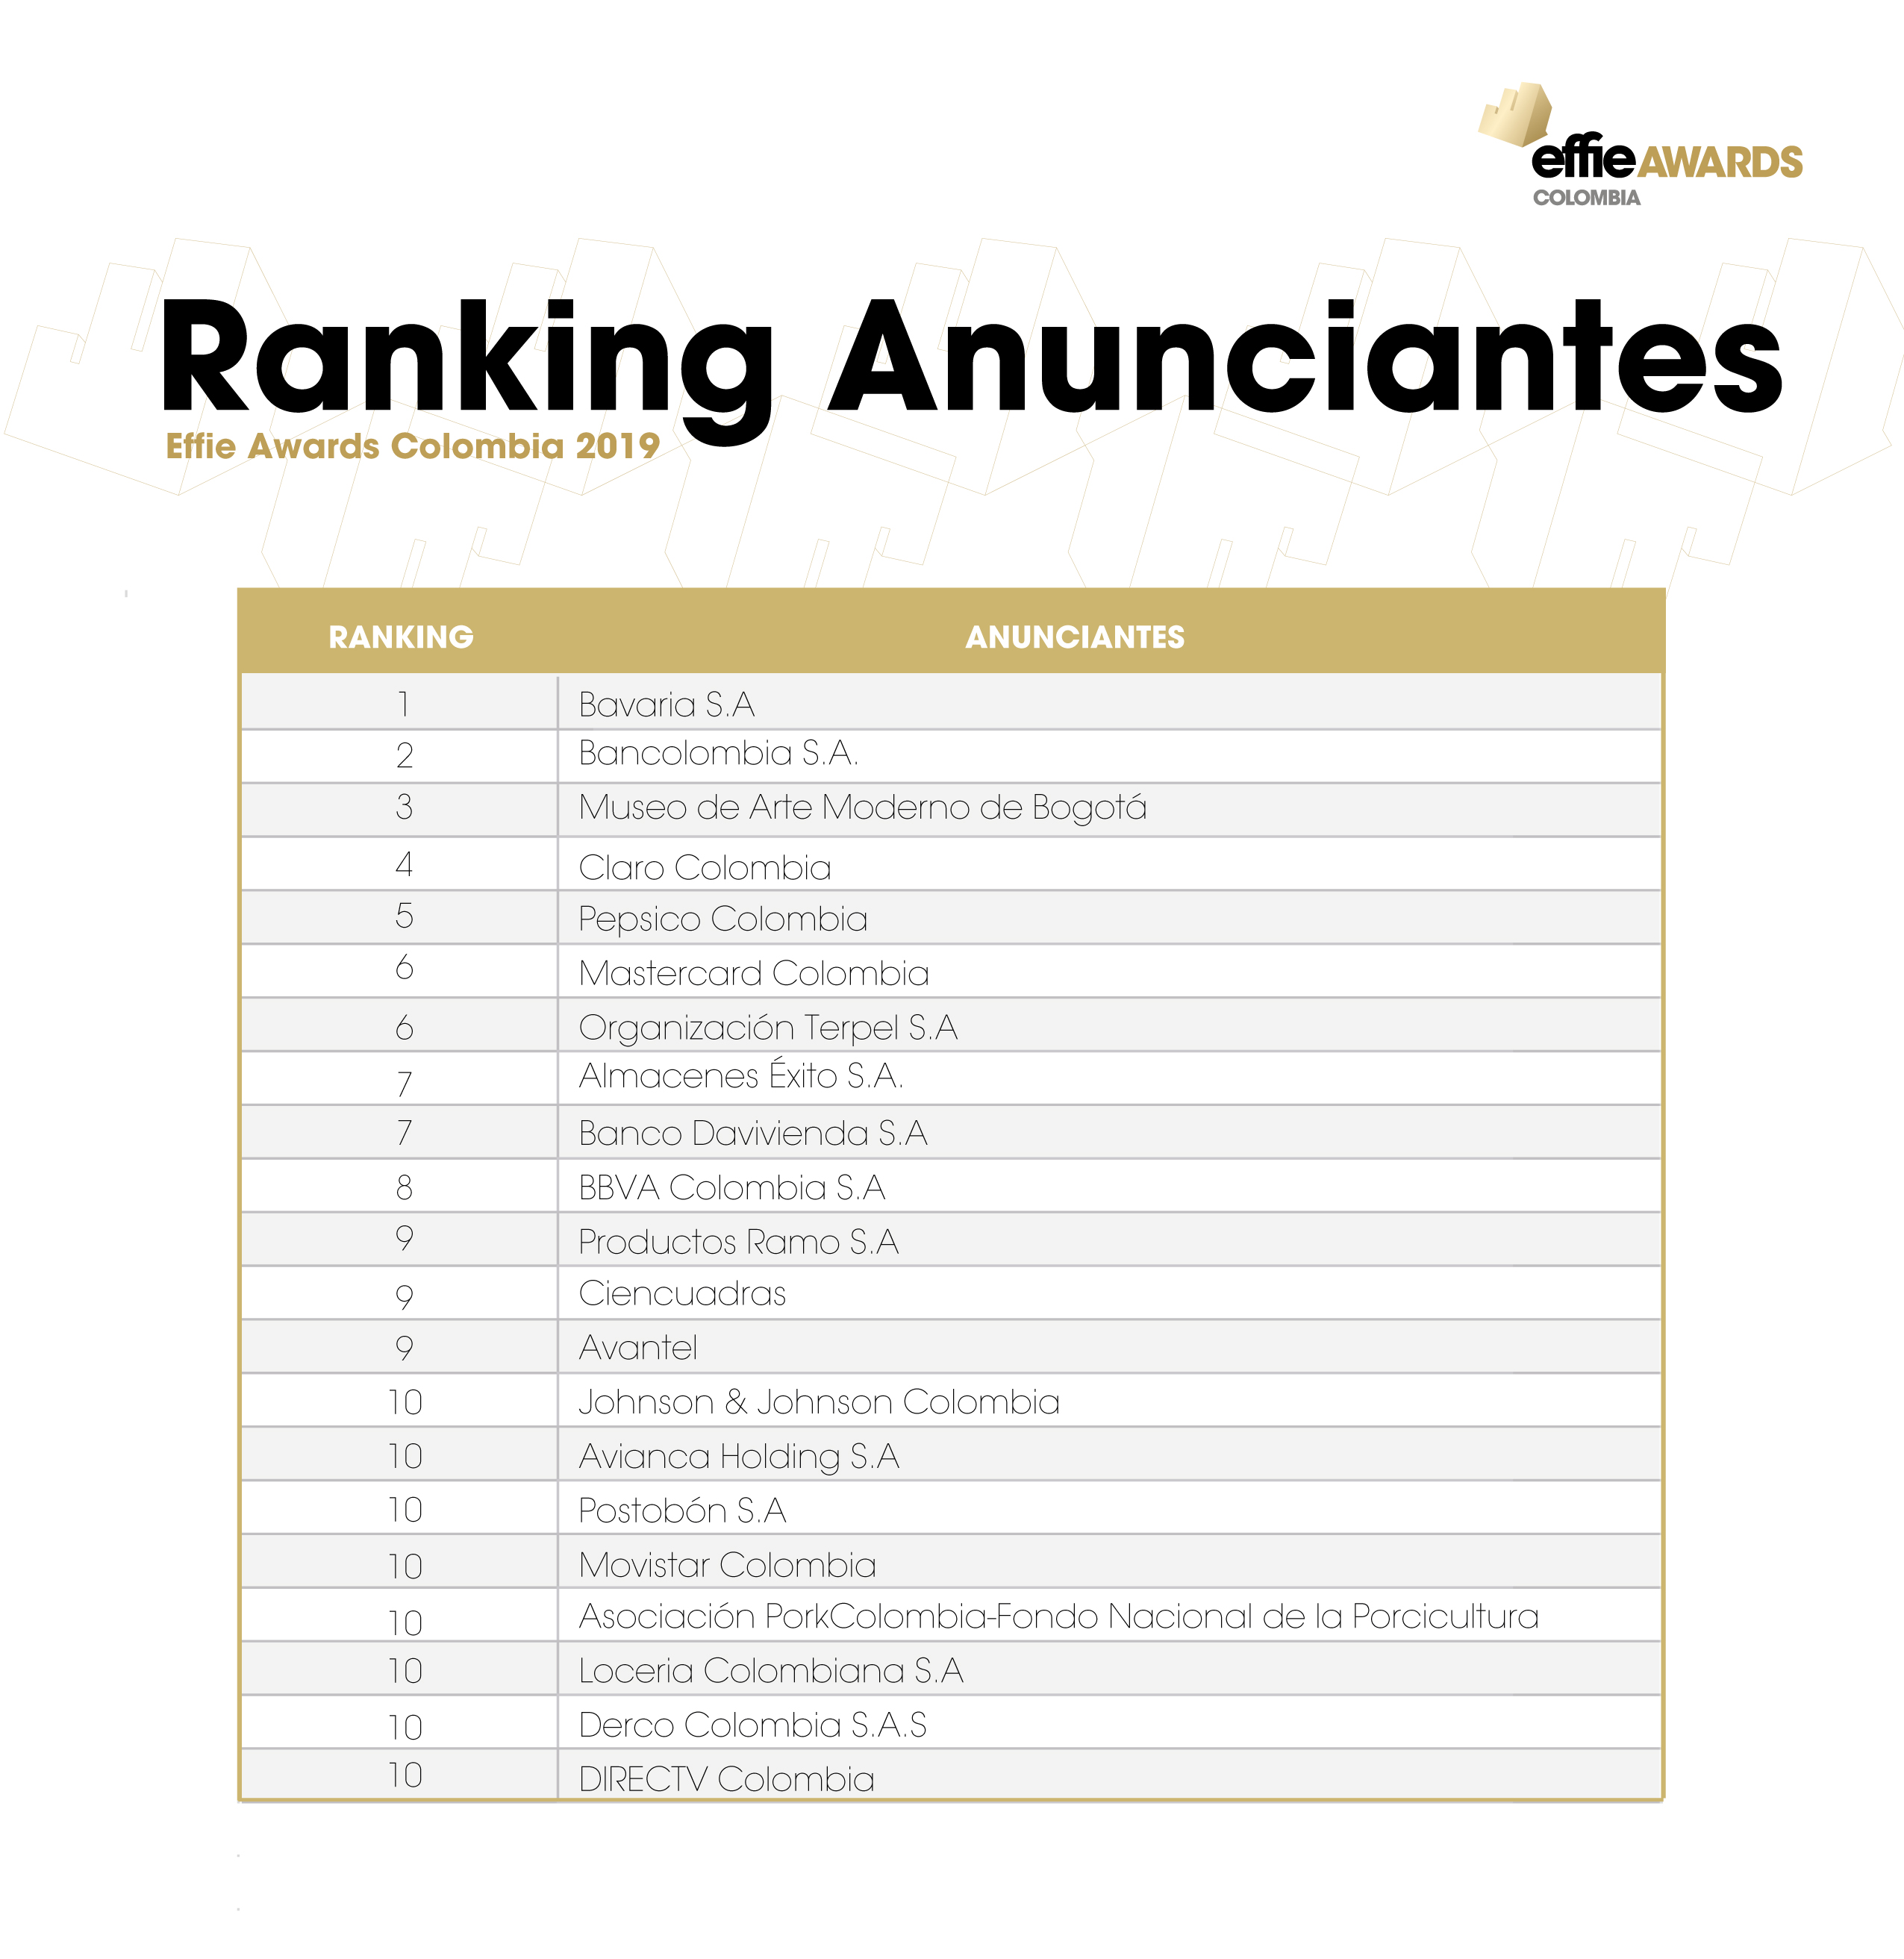 2019.09.30.A Effie Colombia Ranking Anunciantes